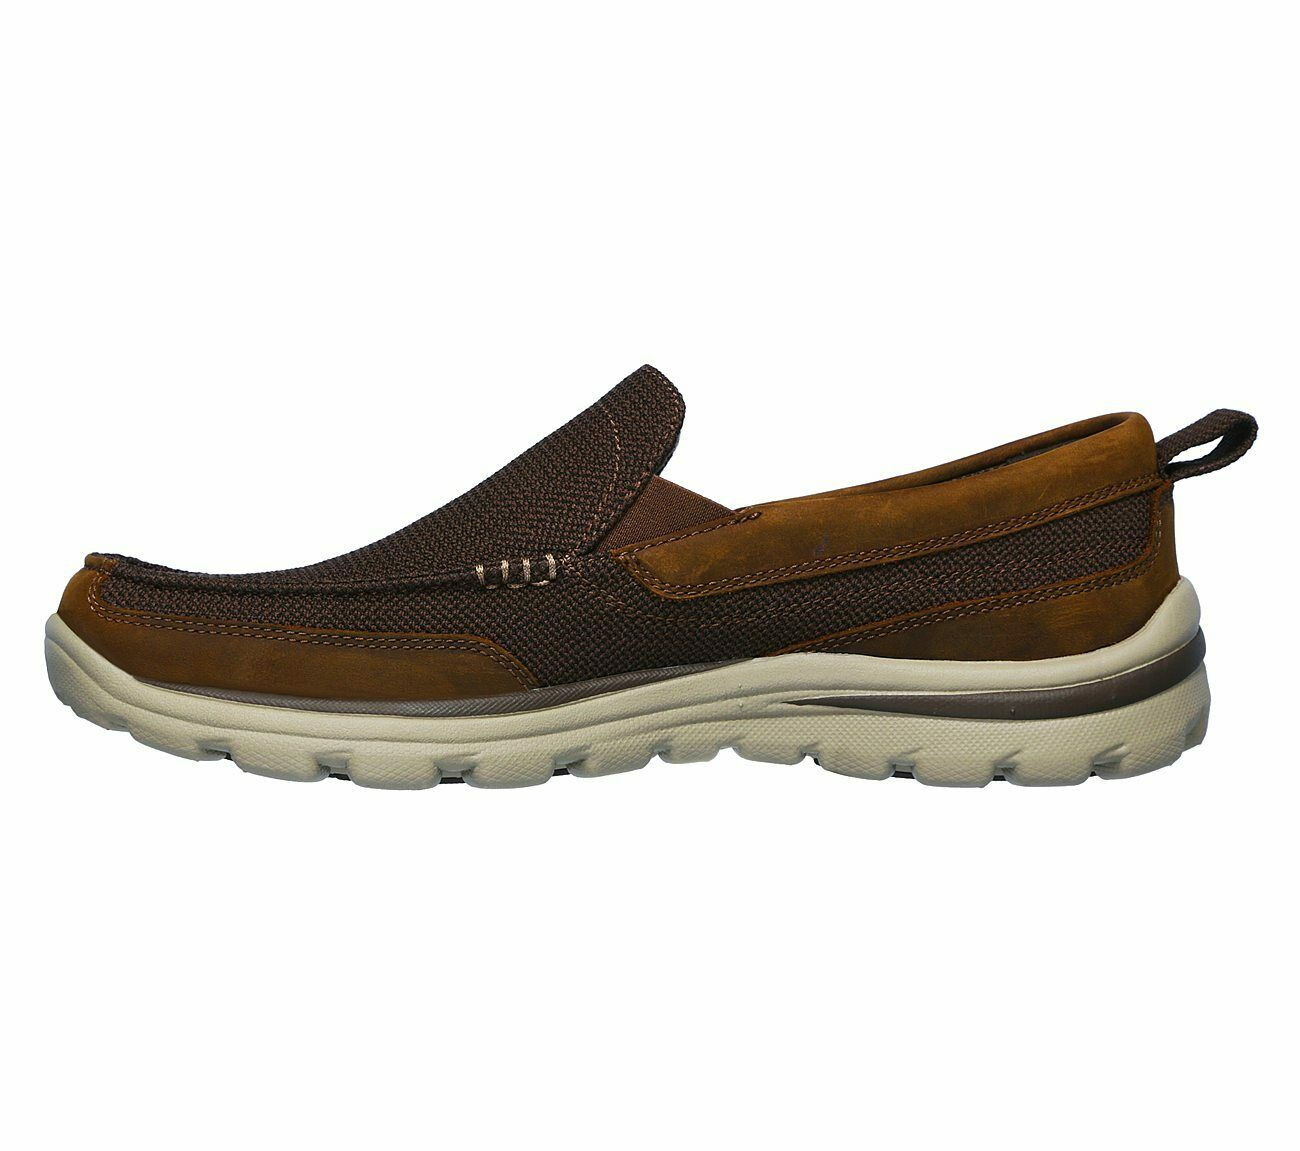 Maquinilla de afeitar Inquieto como eso  Skechers 2016 Mens Relaxed Fit Superior Misko Shoes 64590 Slip on Casual  Loafers UK 8.5 for sale | eBay